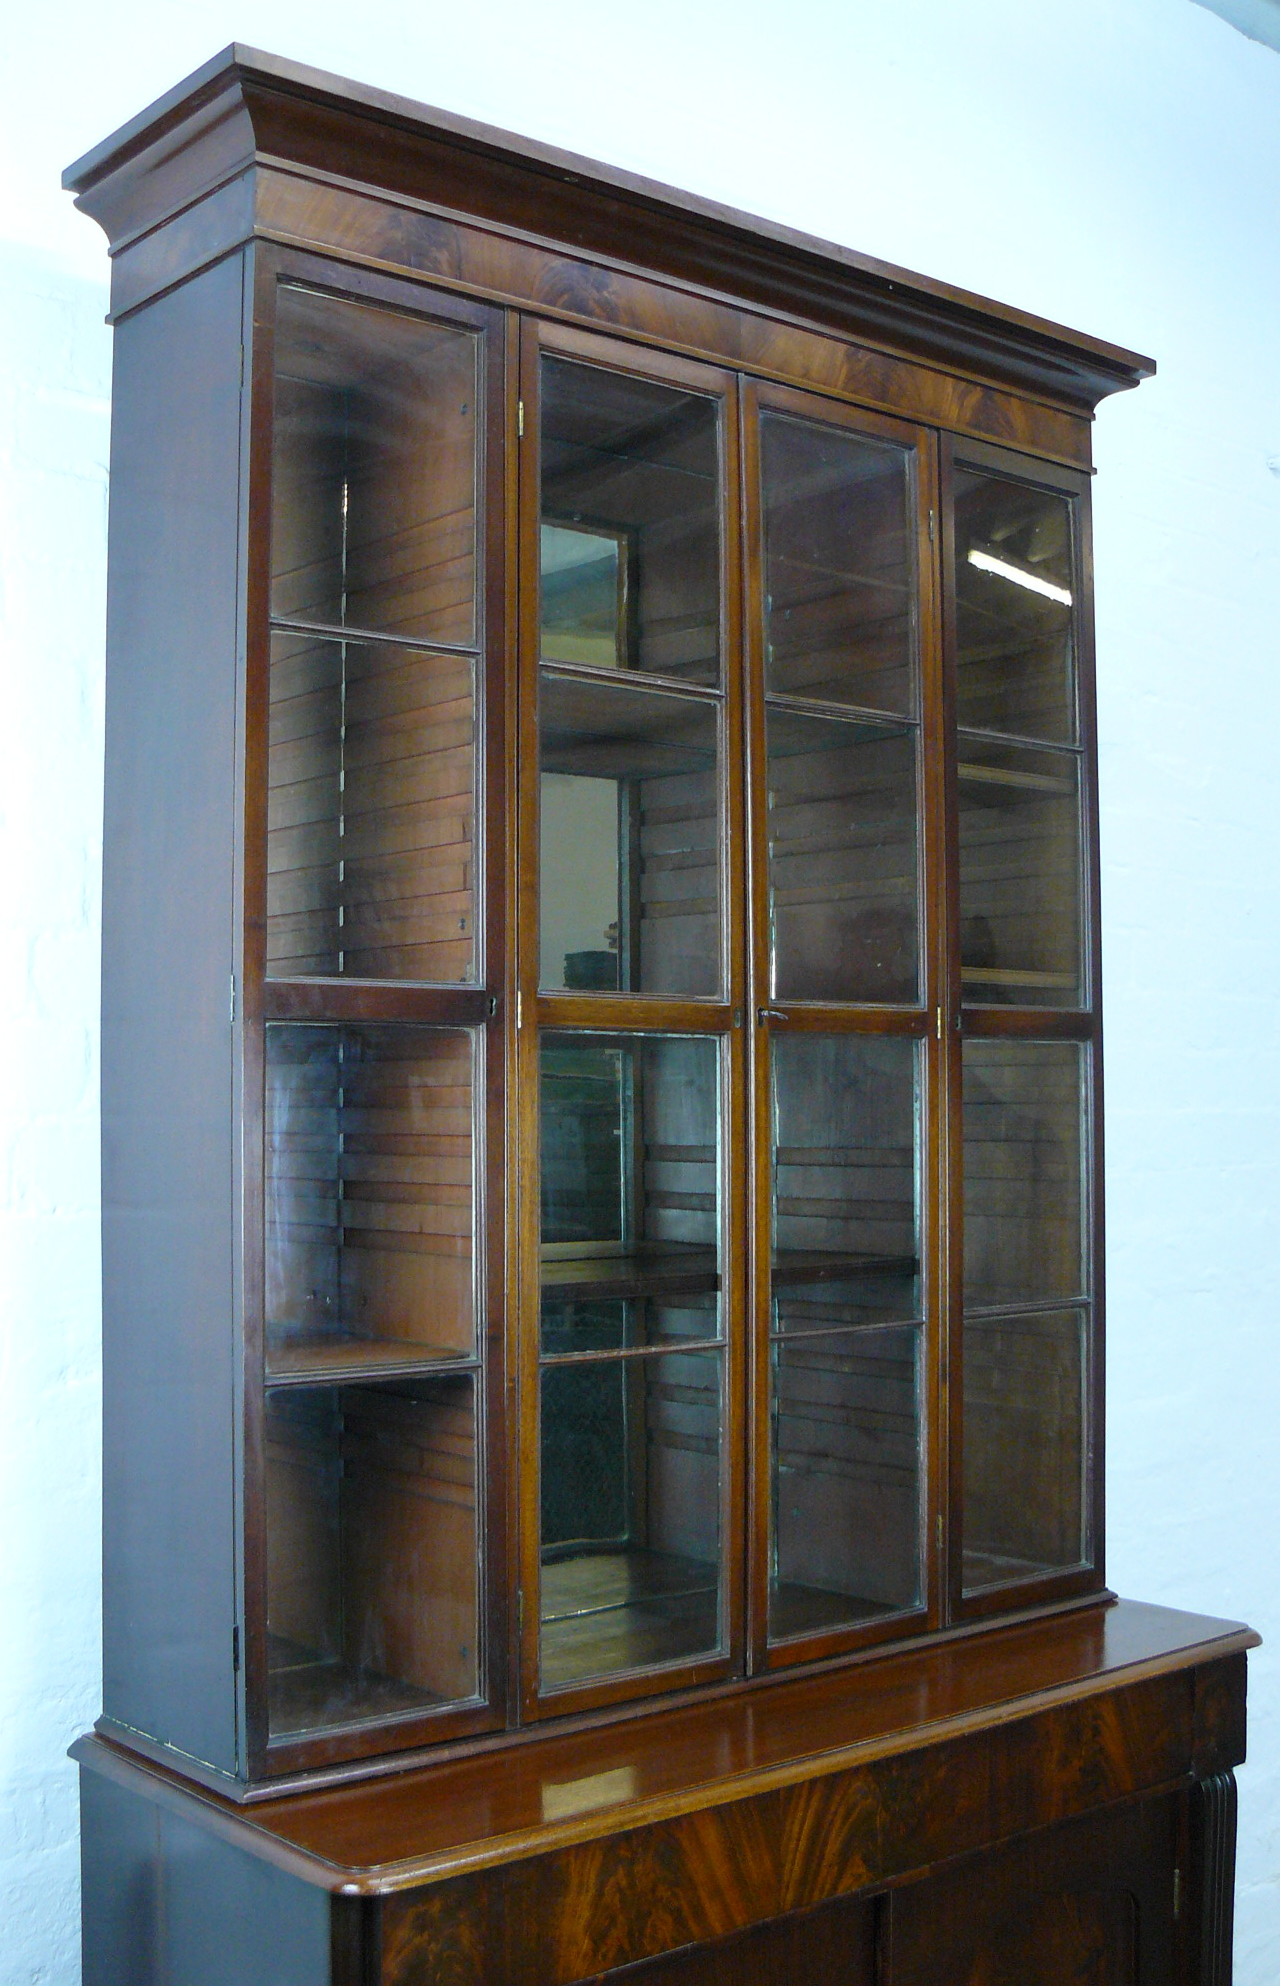 A Lovely Large Edwardian Mahogany Shop Original Mirrors Home Display Cabinet